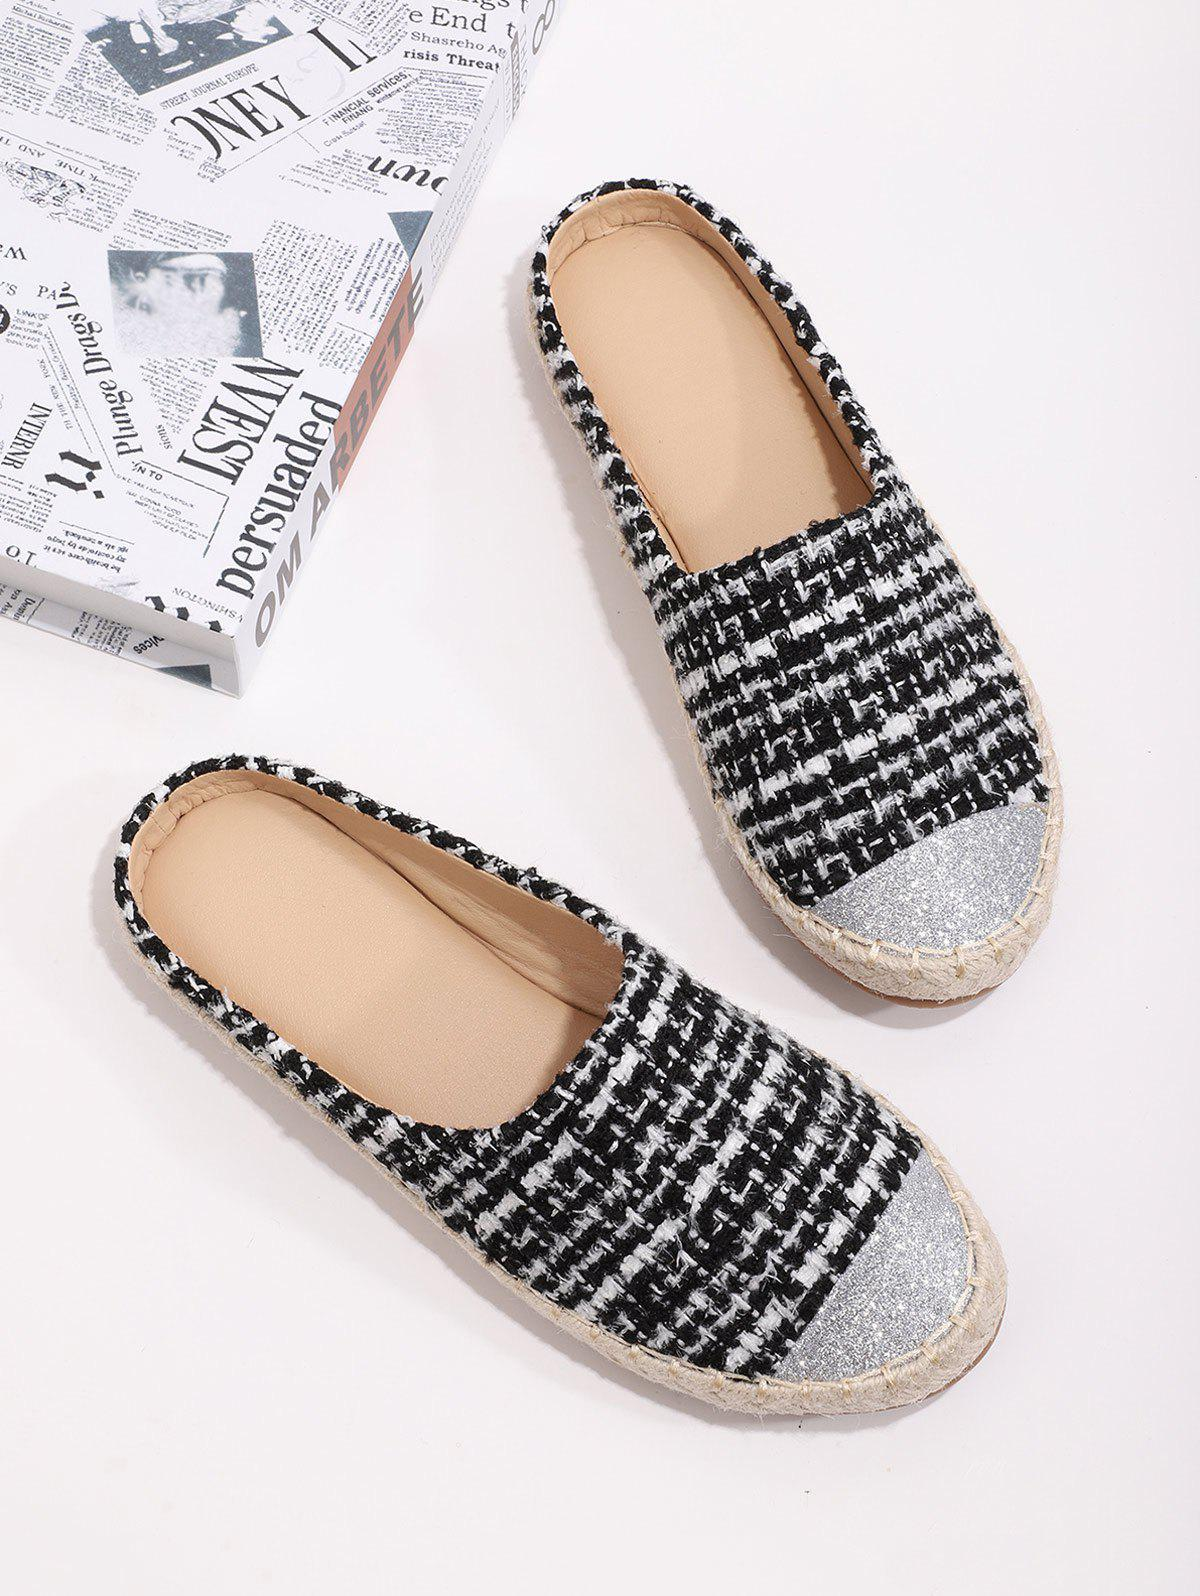 Shiny Toe Tweed Espadrilles Half Flat Shoes - BLACK EU 39